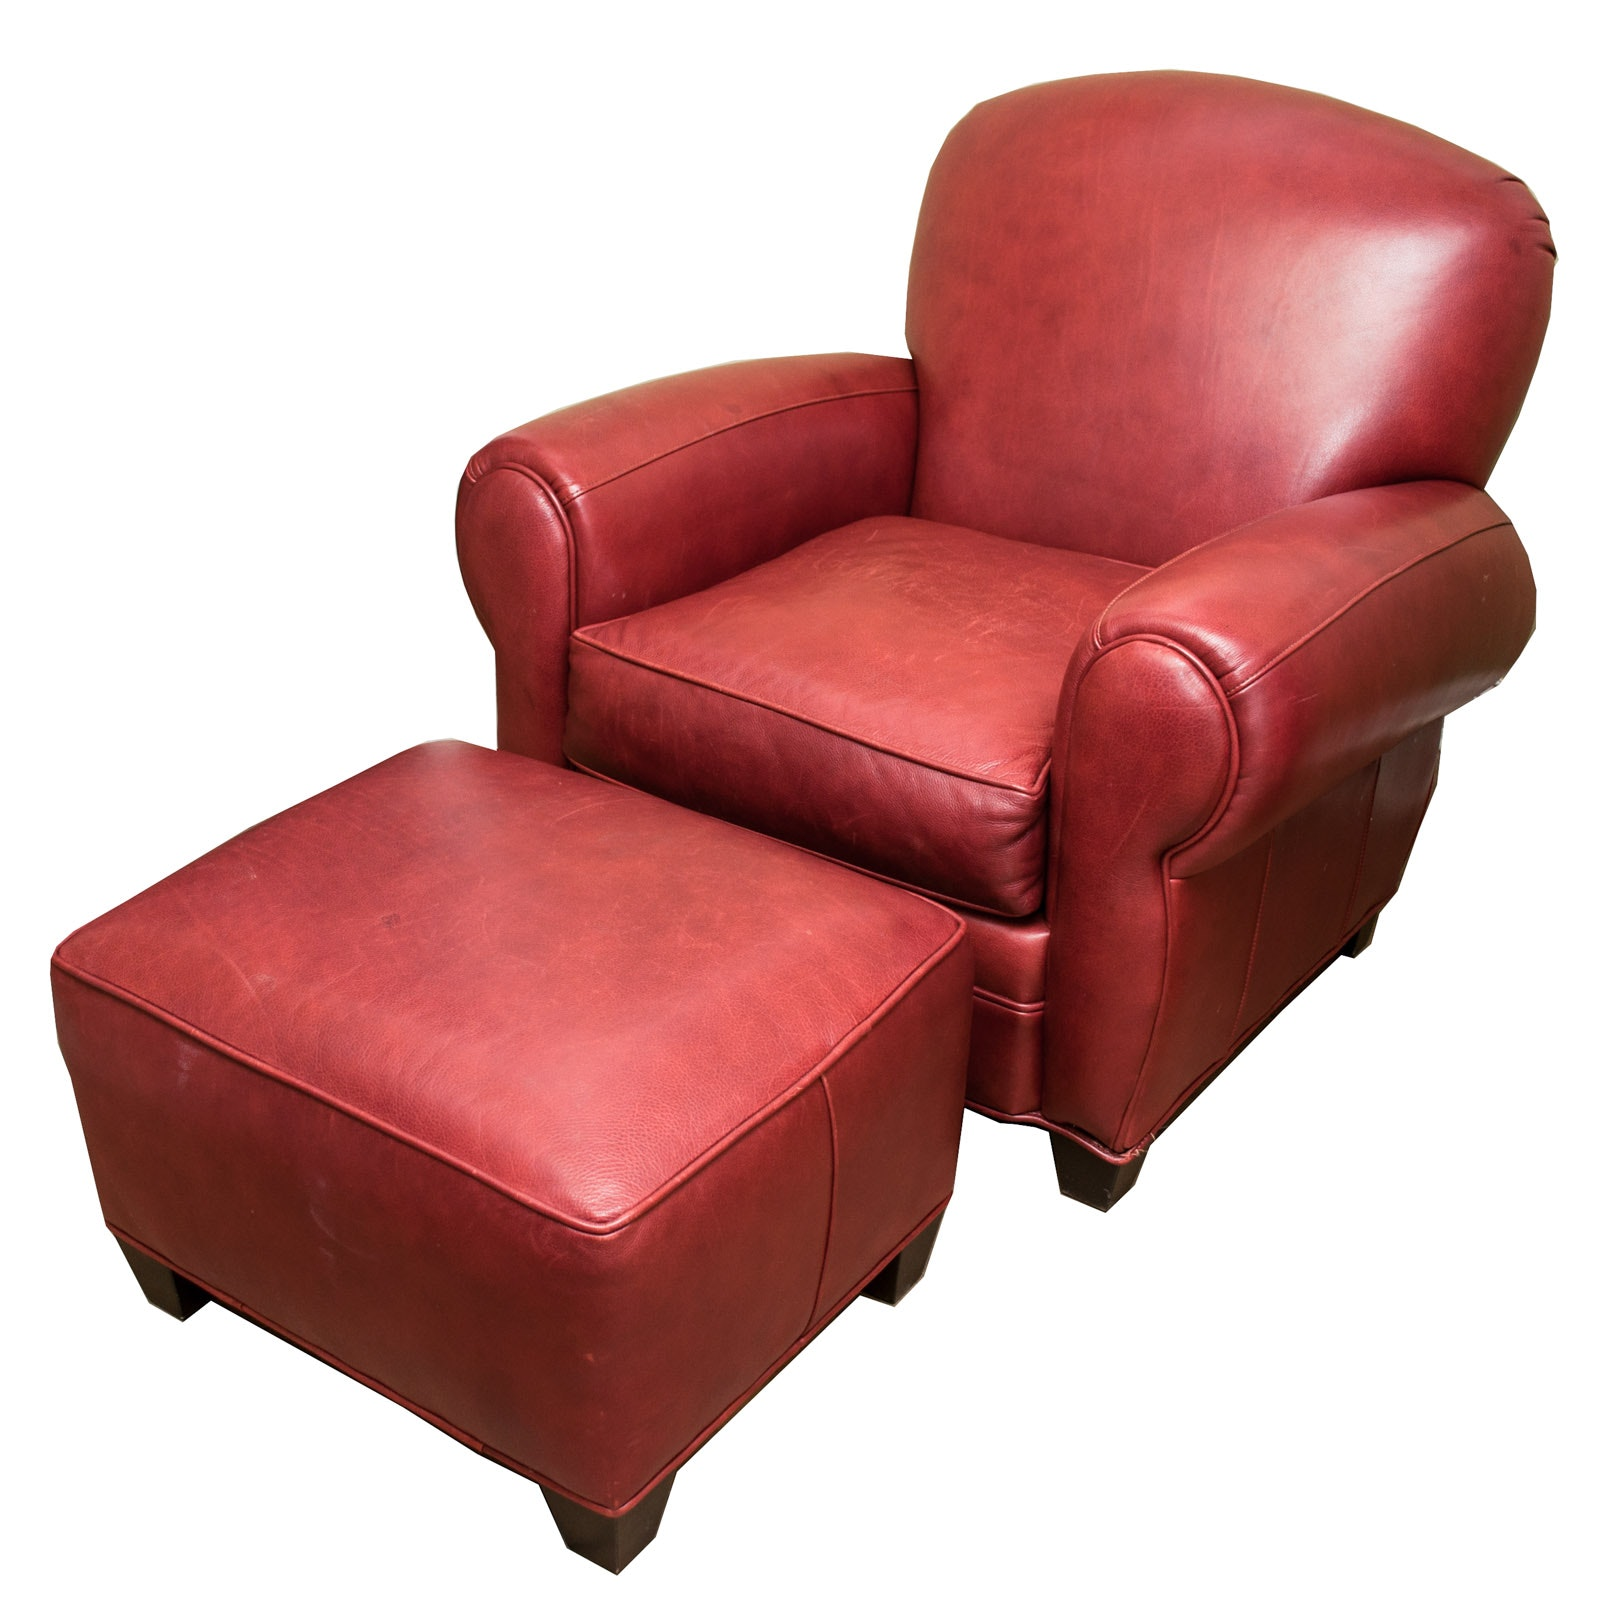 Exceptionnel Red Leather Chair U0026 Ottoman By Arhaus Furniture ...